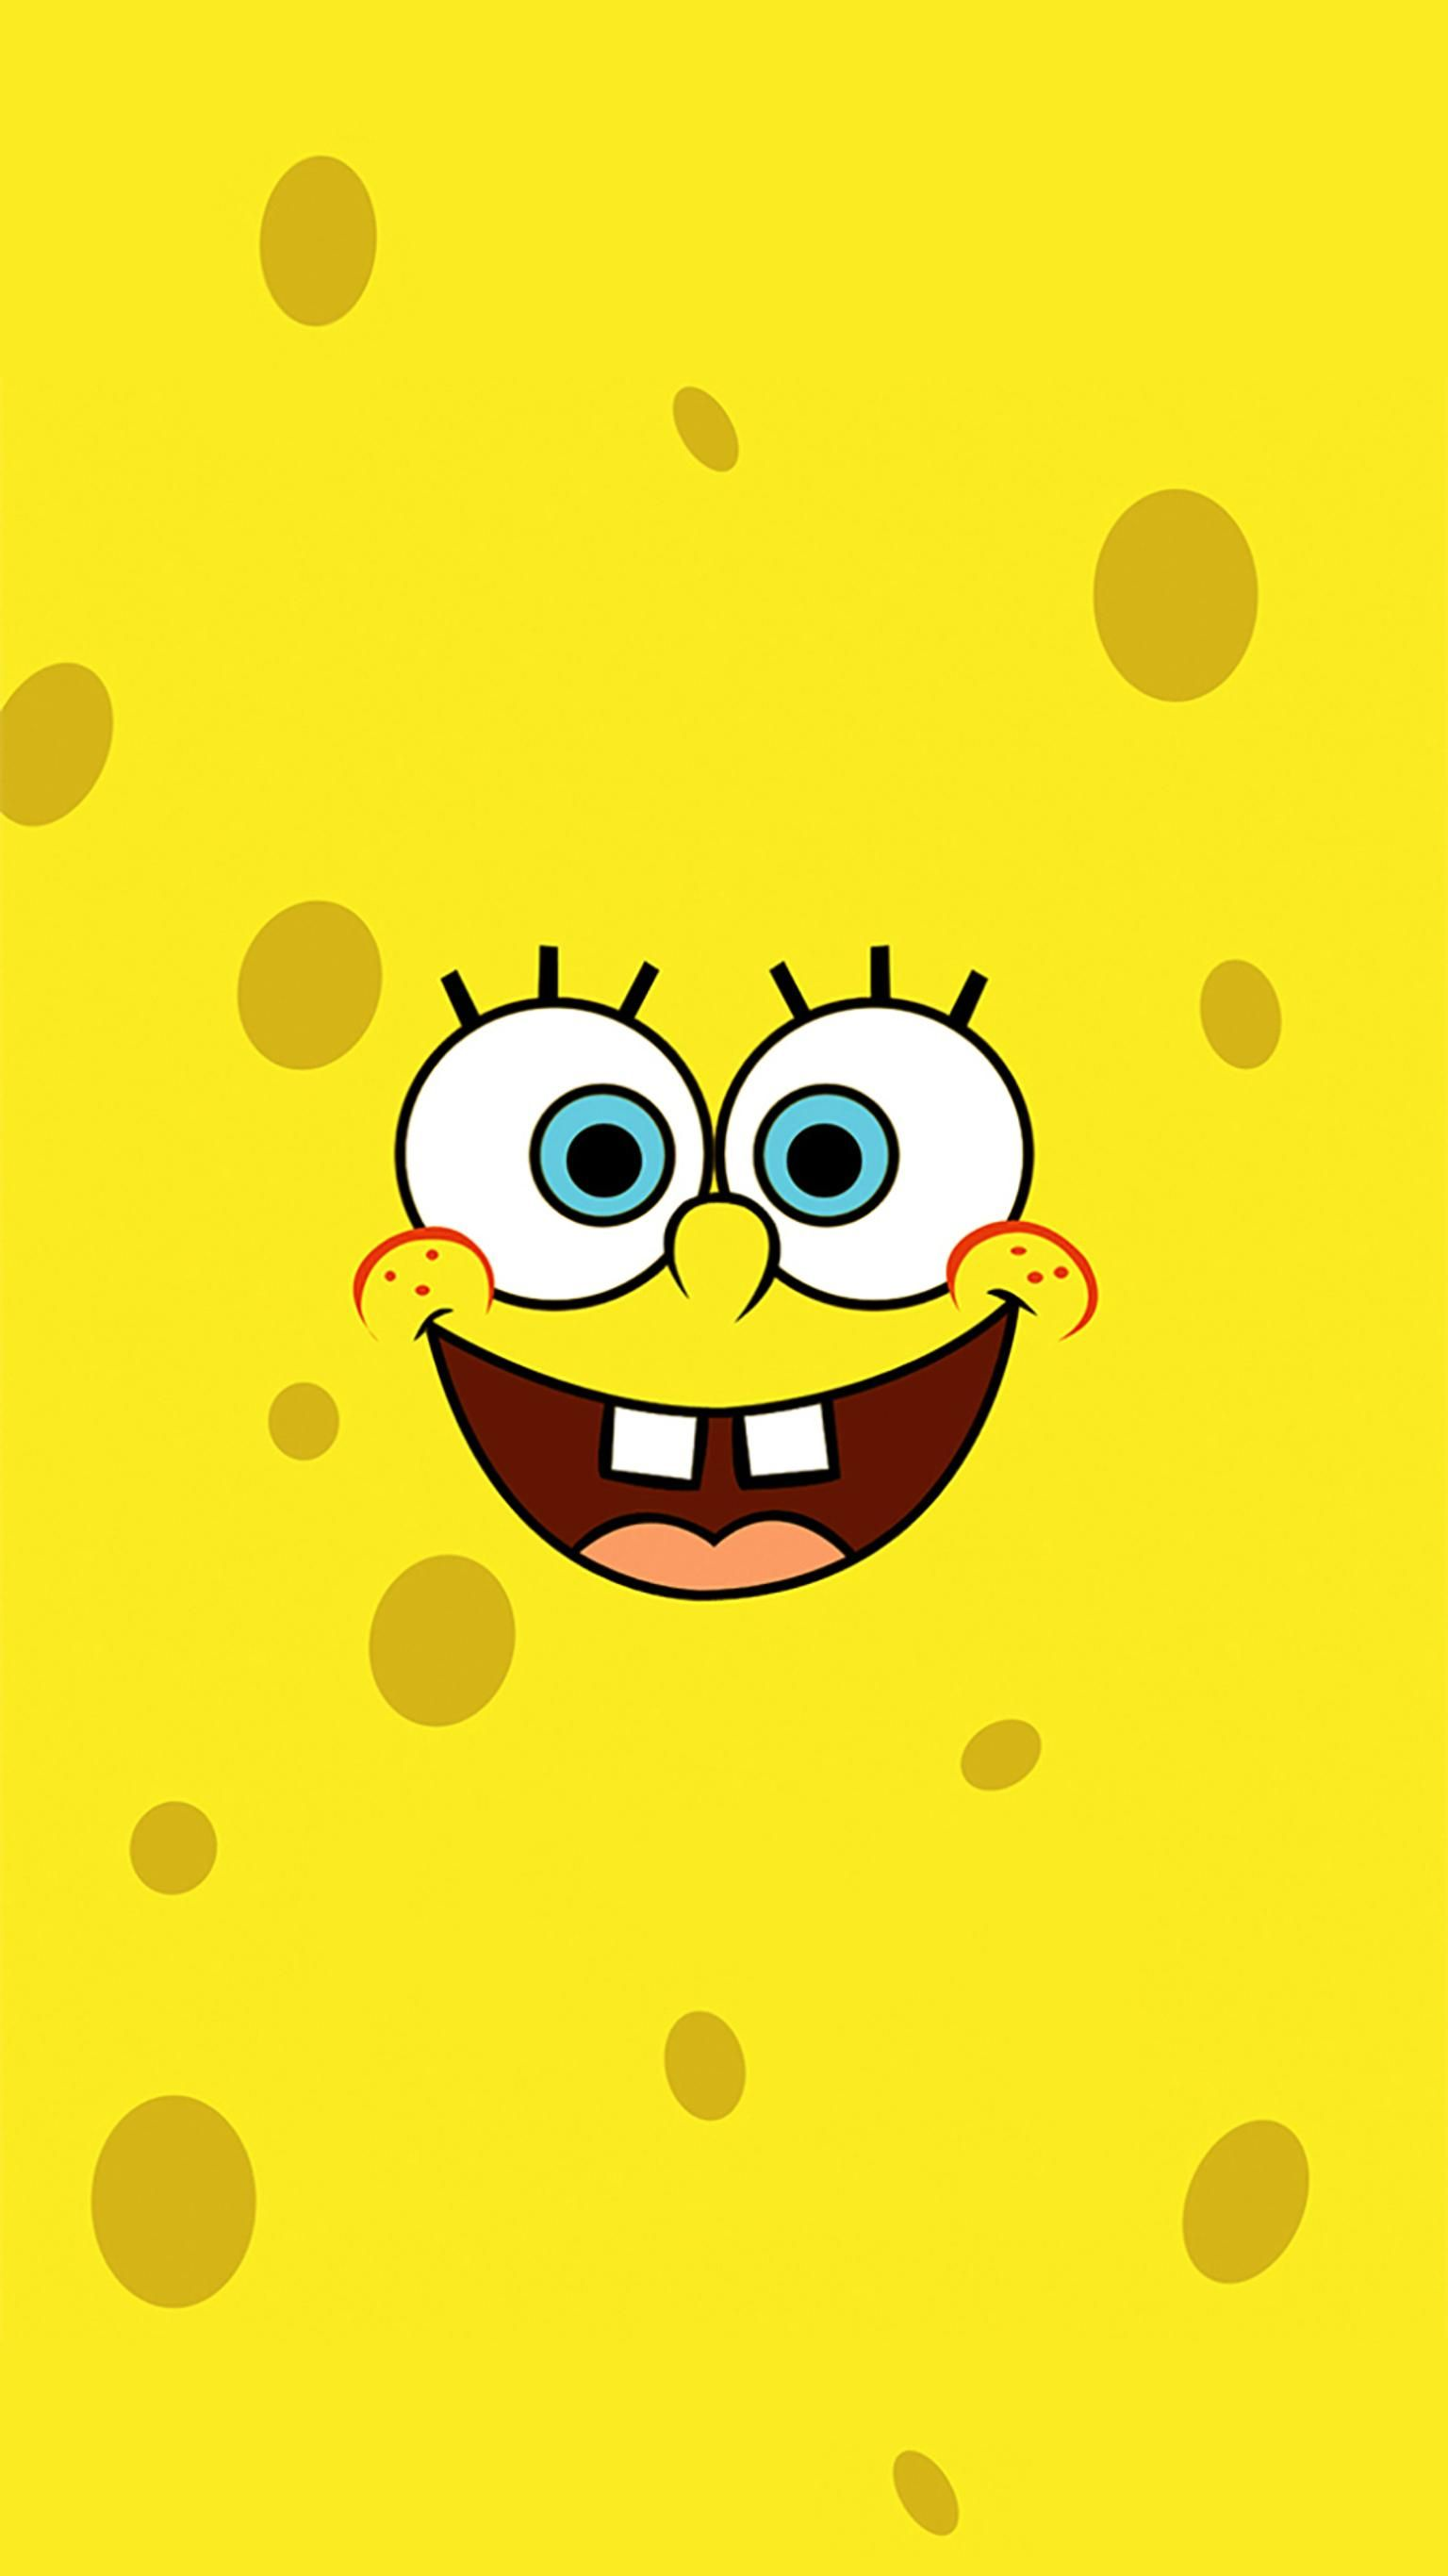 SpongeBob SquarePants Phone Wallpaper Spongebob iphone